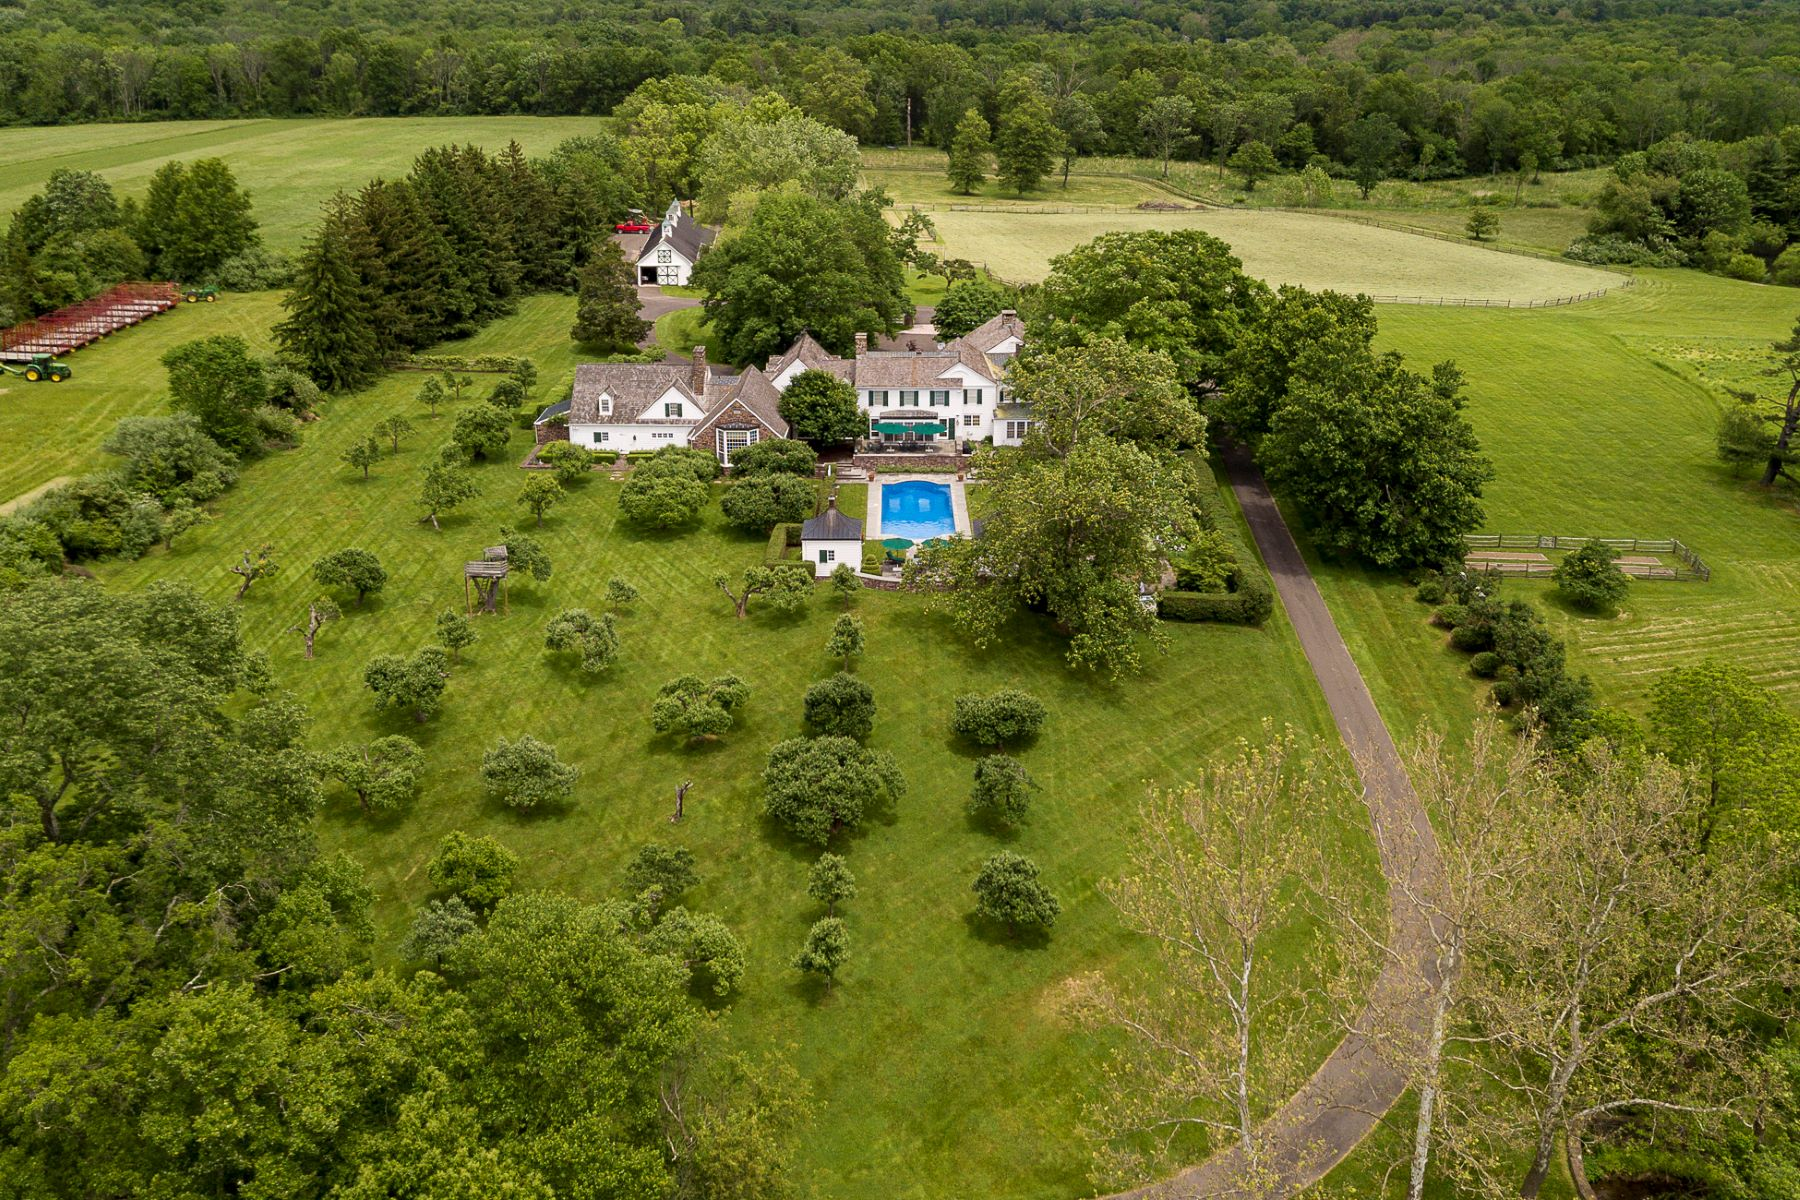 Additional photo for property listing at Green Valley Farm 286 Carter Road, Princeton, New Jersey 08540 Hoa Kỳ